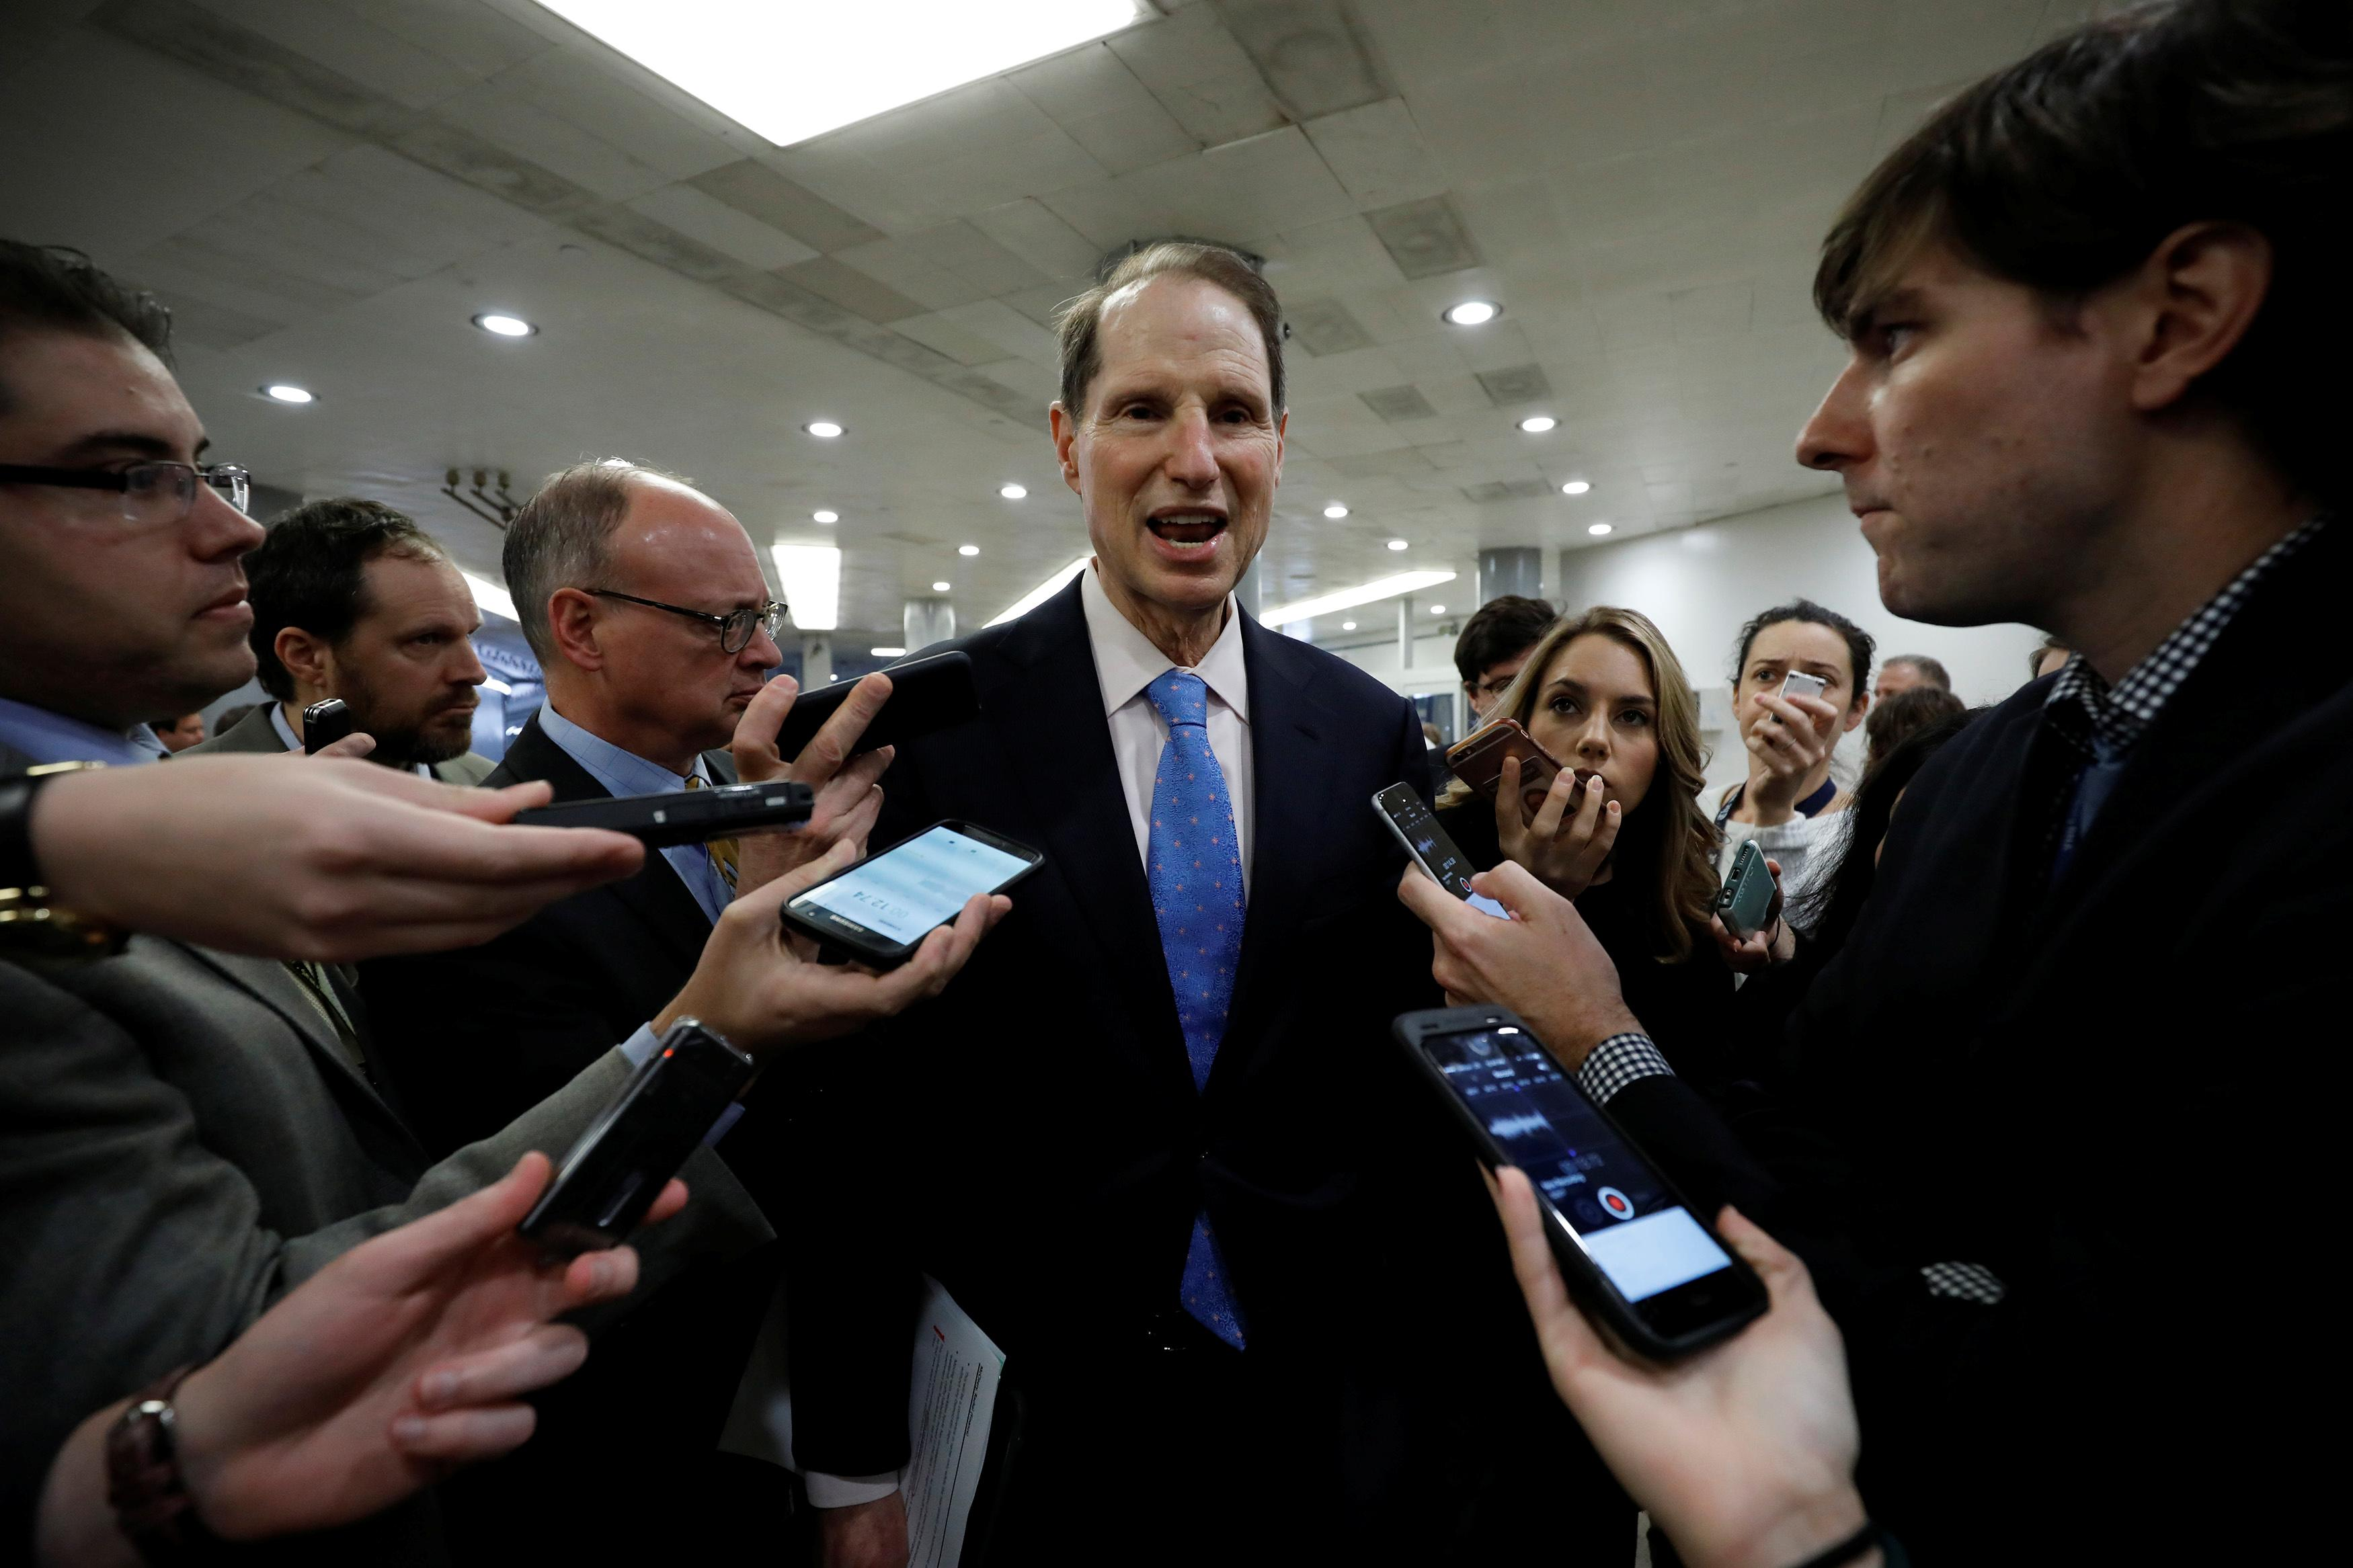 Sen. Wyden: People like Mark Zuckerberg should be punished for their lies